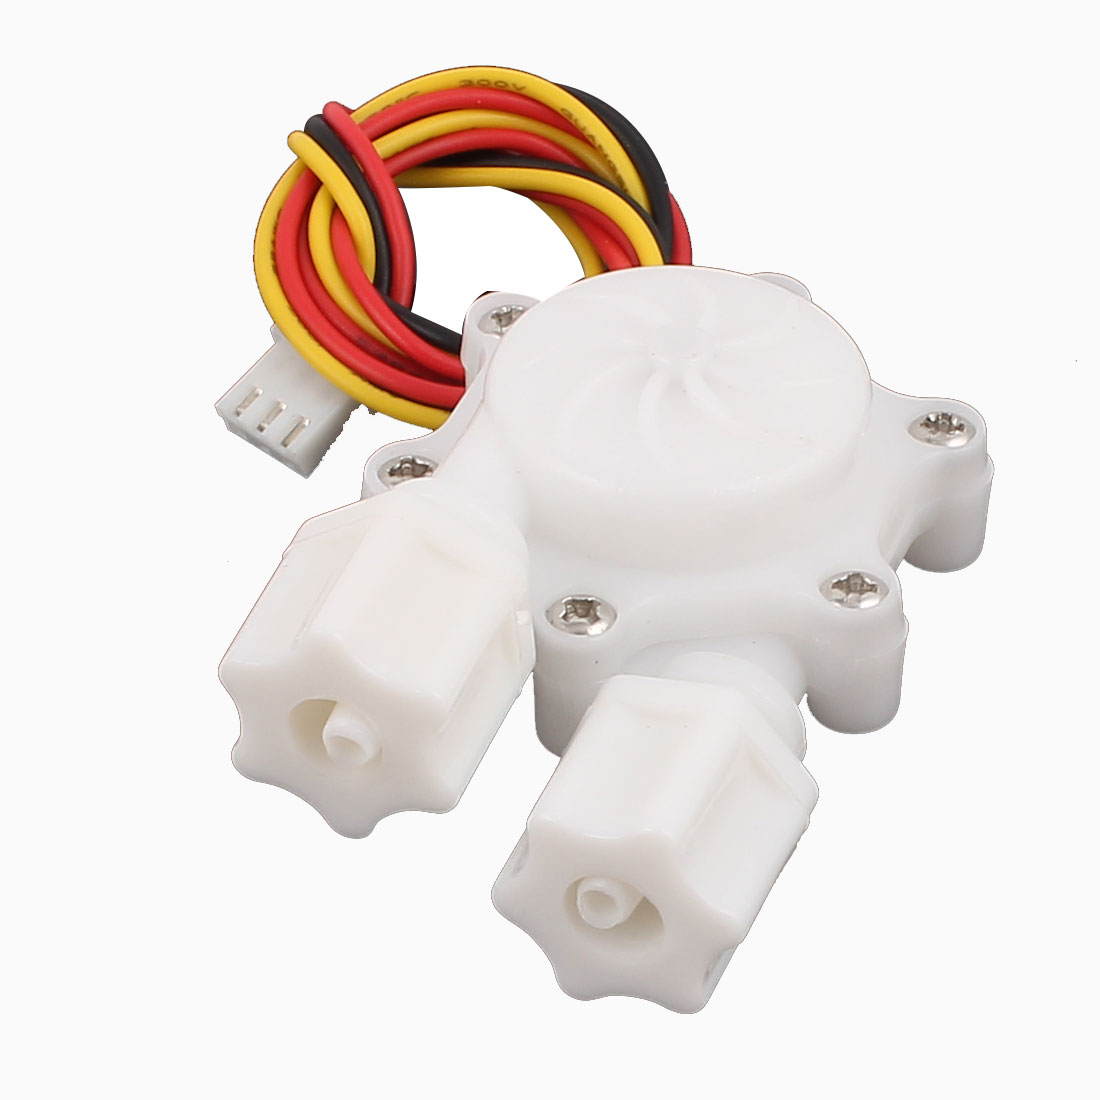 Plastic 0.2-2.5L/min G1/4 Male Thread Water Flow Sensor Flowmeter SEN-HW06W